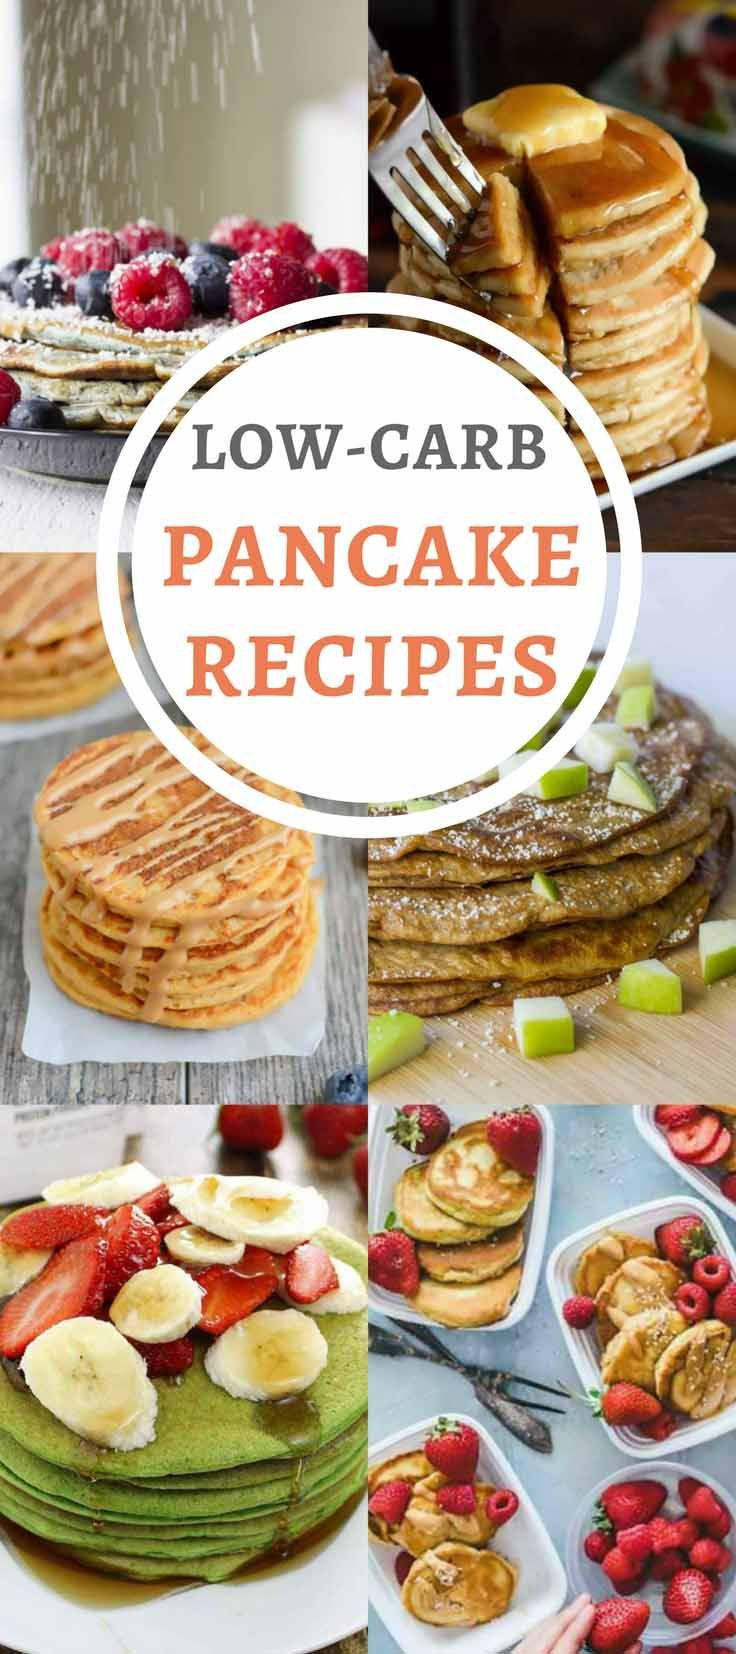 Low Carb Recipes Pinterest  best Diabetes Low Carb Recipes And Articles images